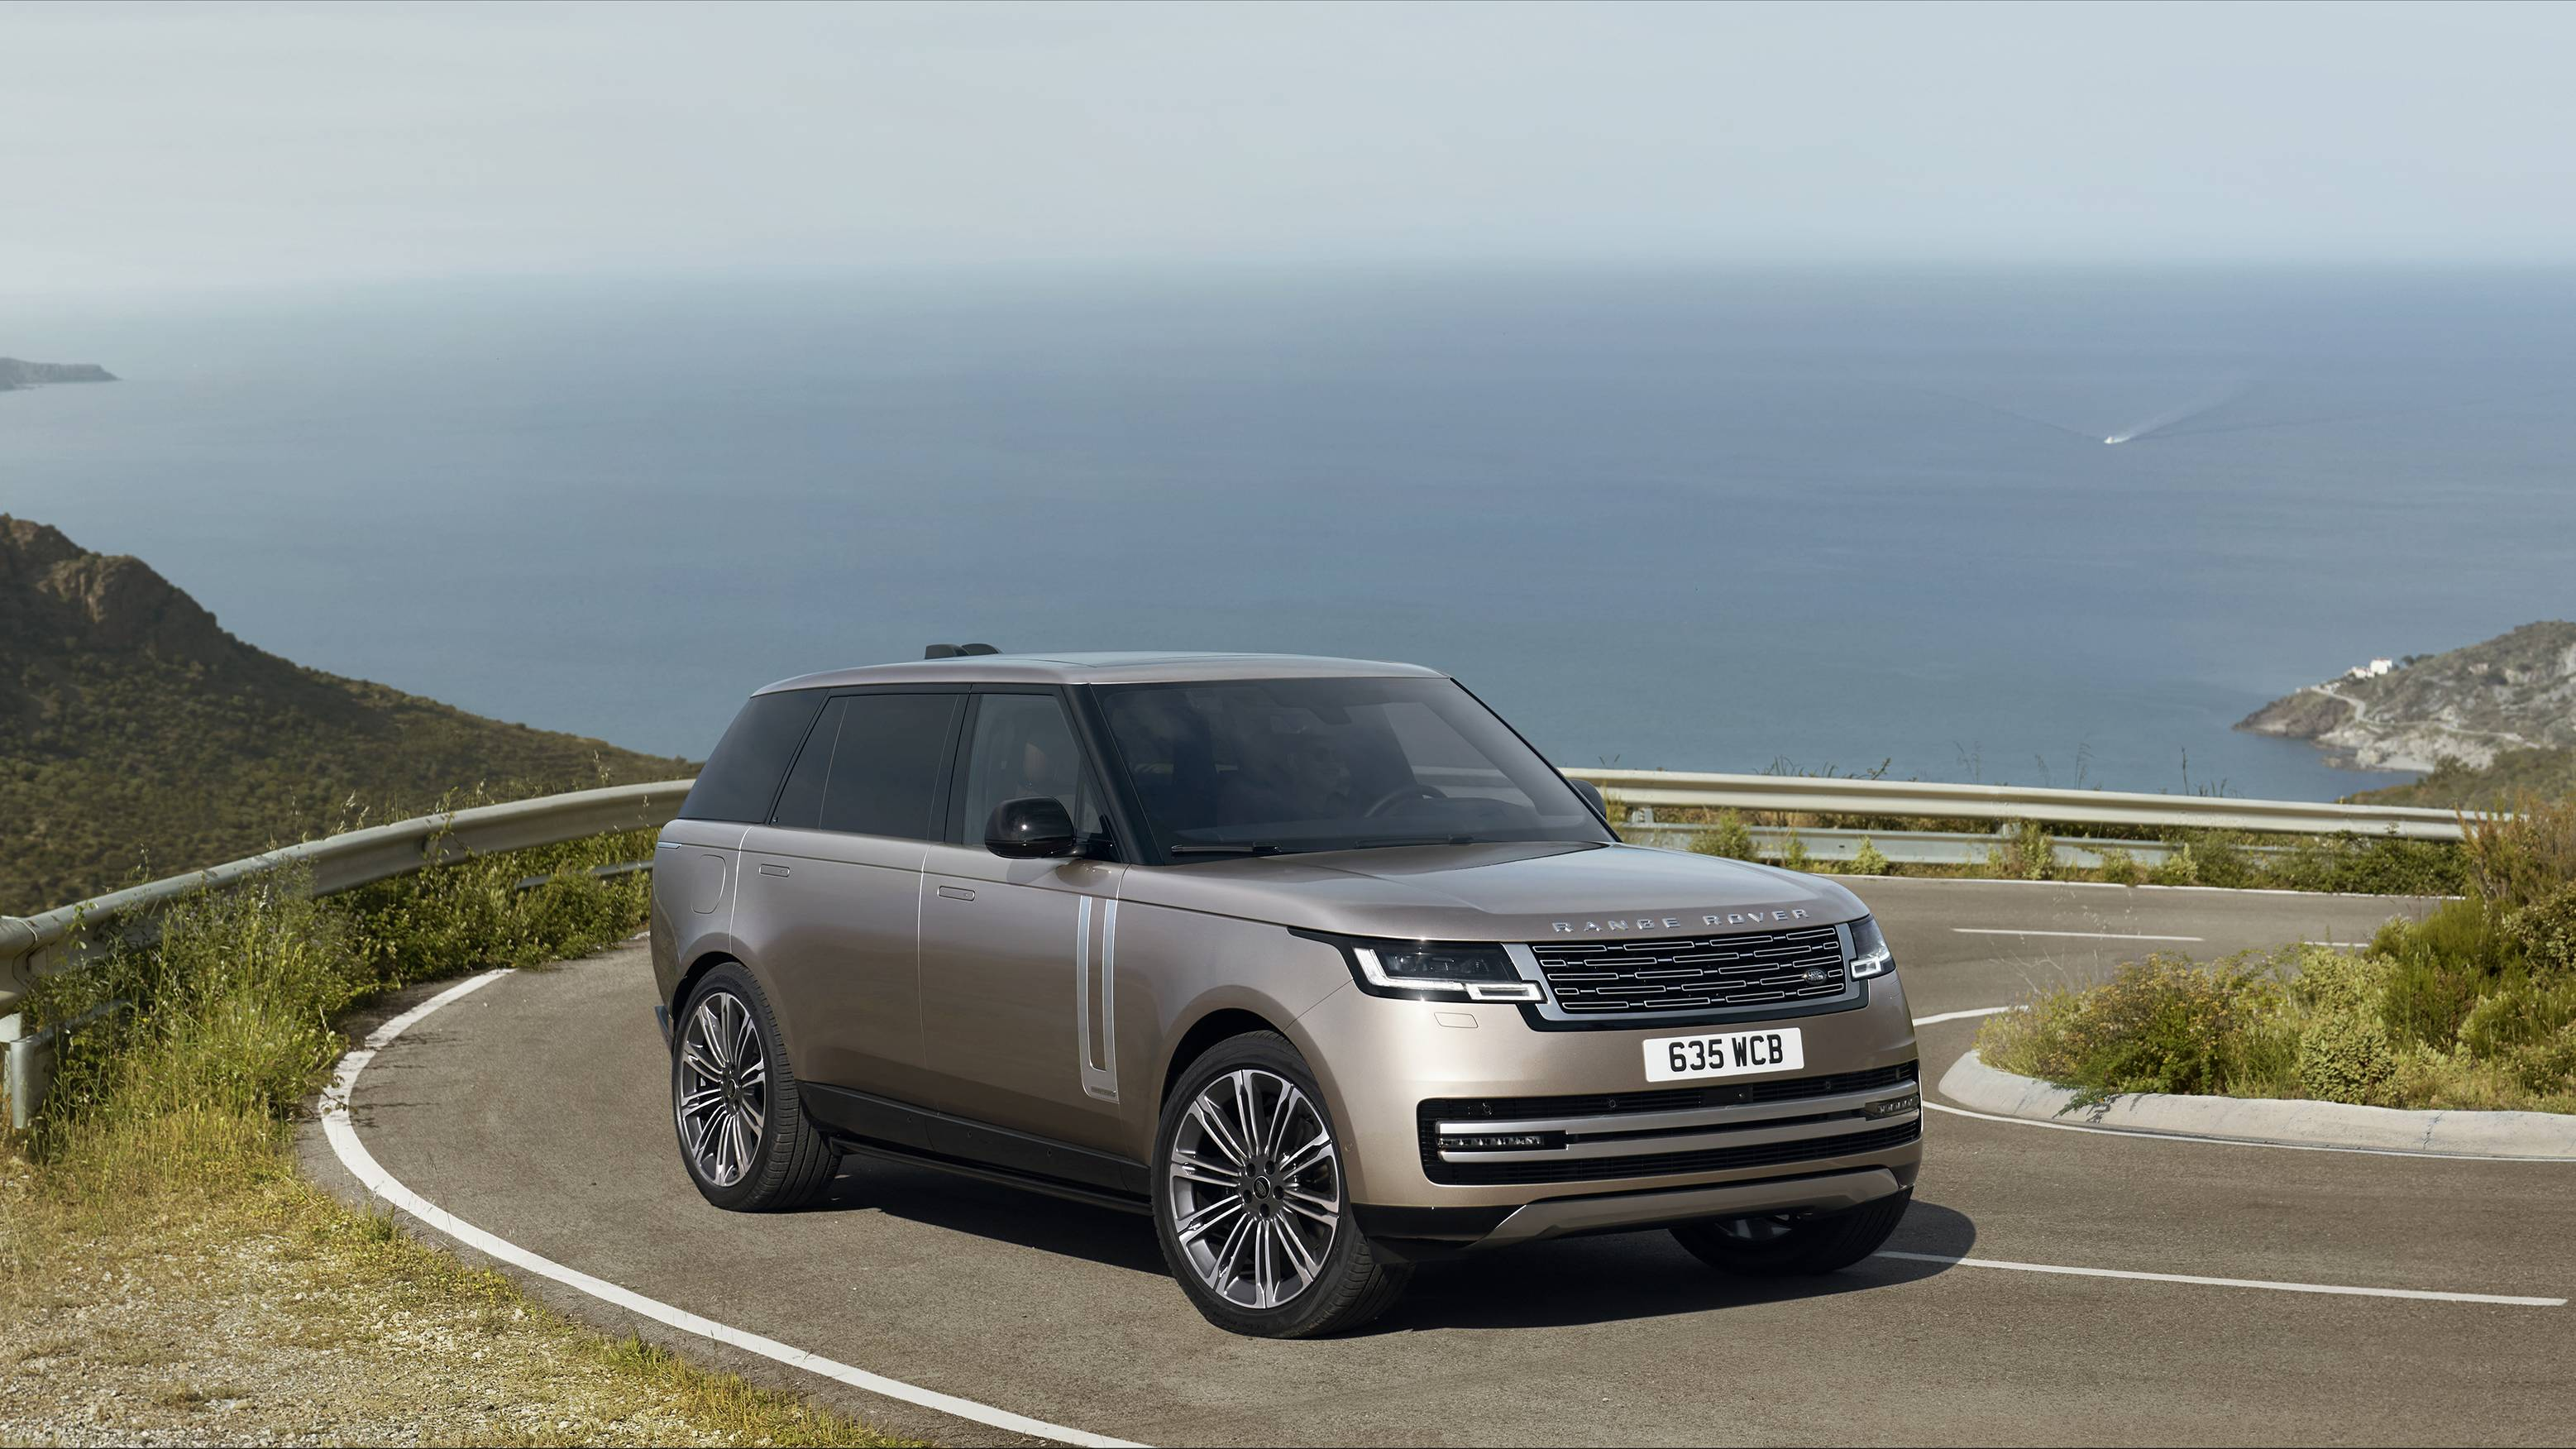 The 2022 Range Rover will come with both 'mild' and plug-in hybrid powertrains